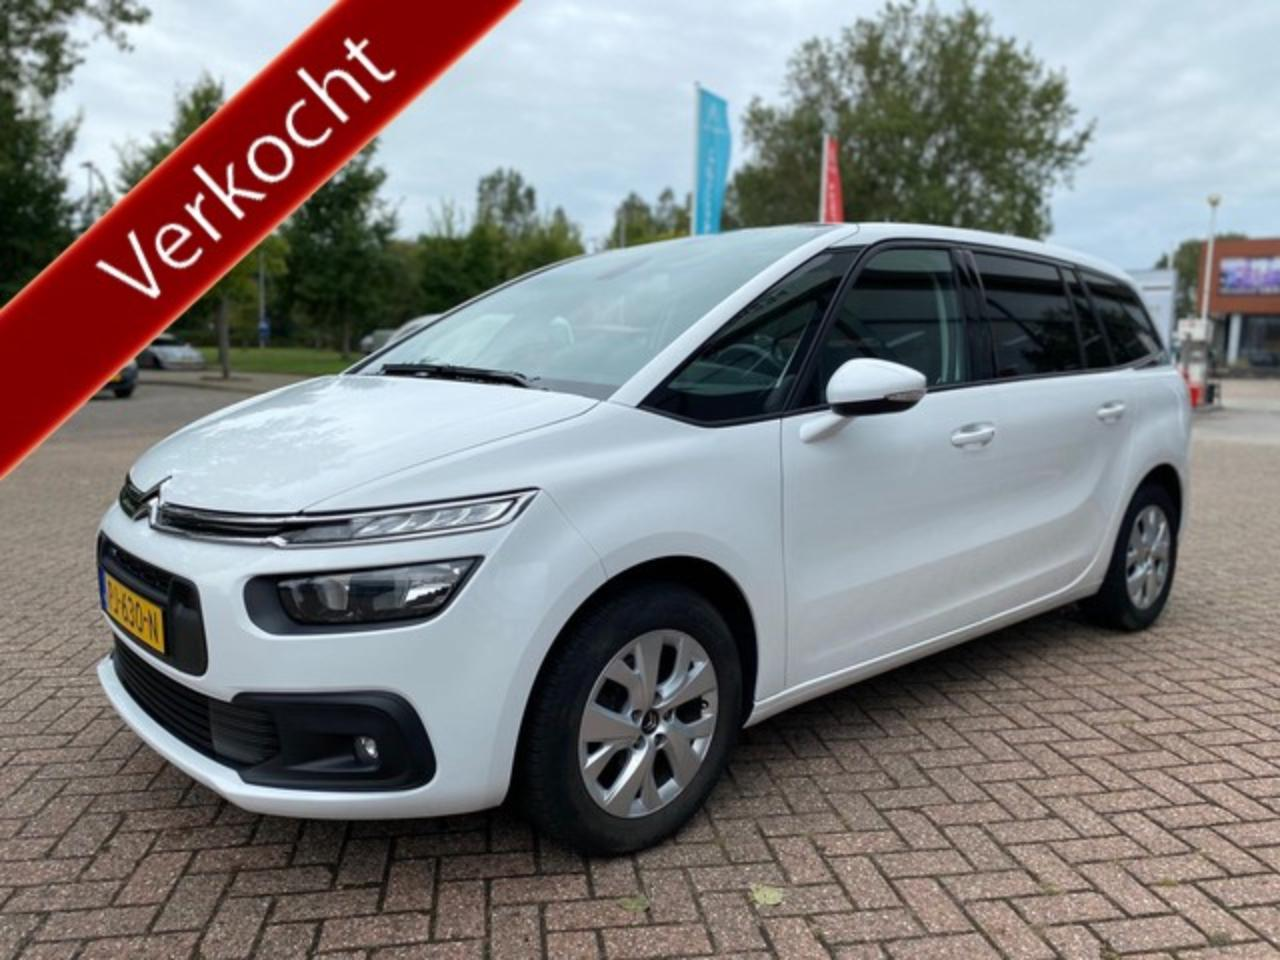 Citroën C4 Grand Picasso GRAND C4 PICASSO 130 PureTech Automaat|Climaat-Cruise Controle|1ste